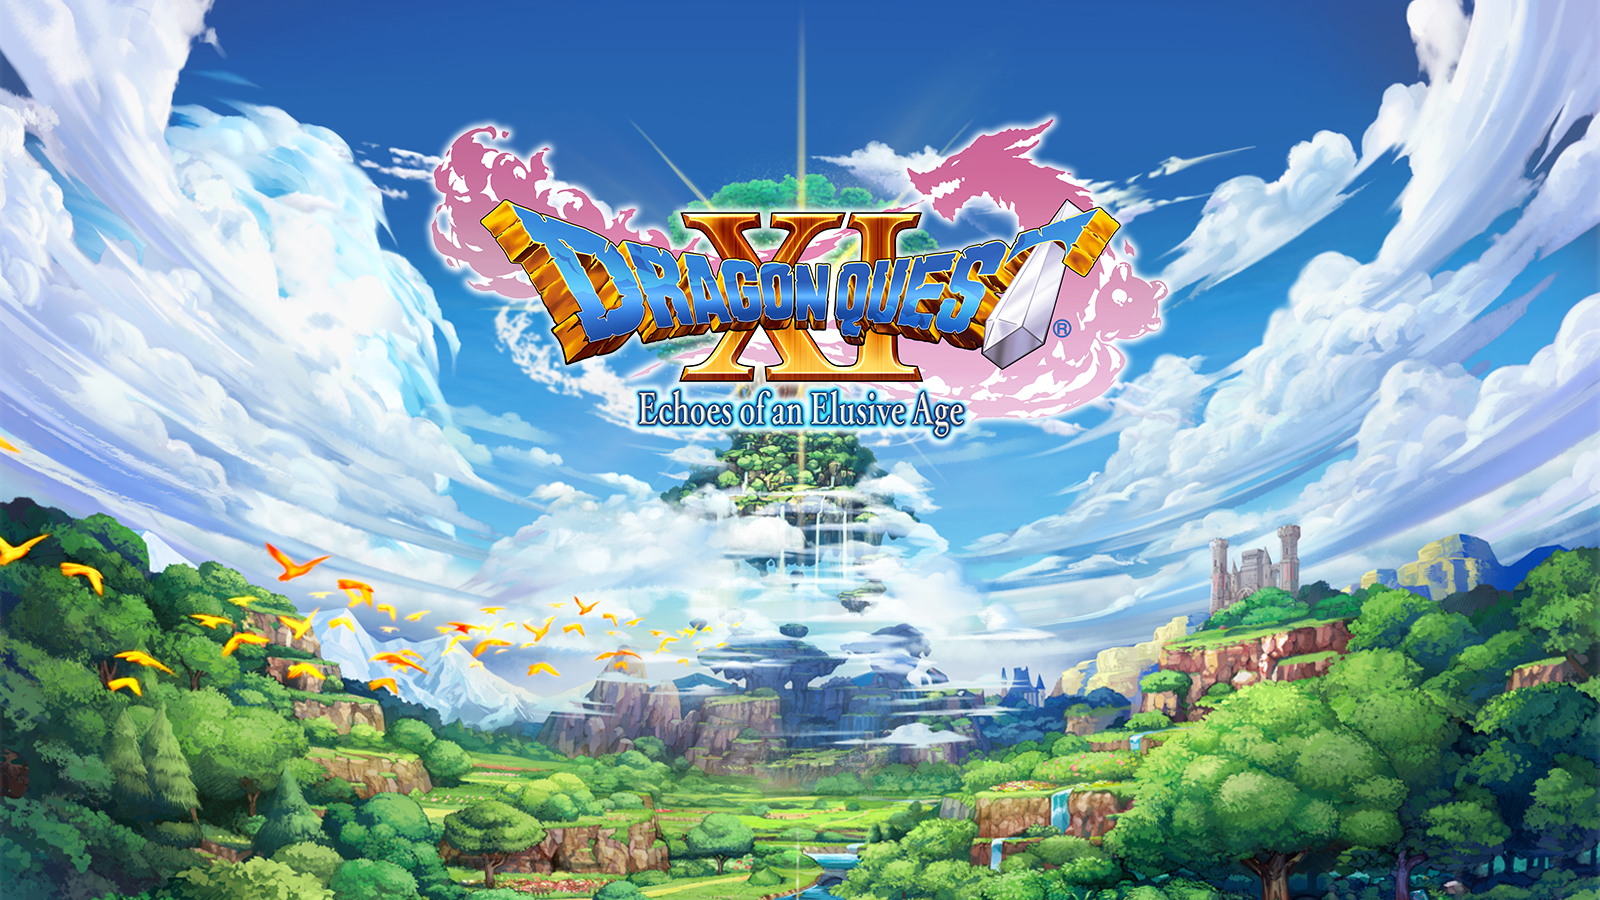 IMAGE(https://9to5toys.com/wp-content/uploads/sites/5/2019/03/Dragon-Quest-XI-Echoes-of-an-Elusive-Age.png)